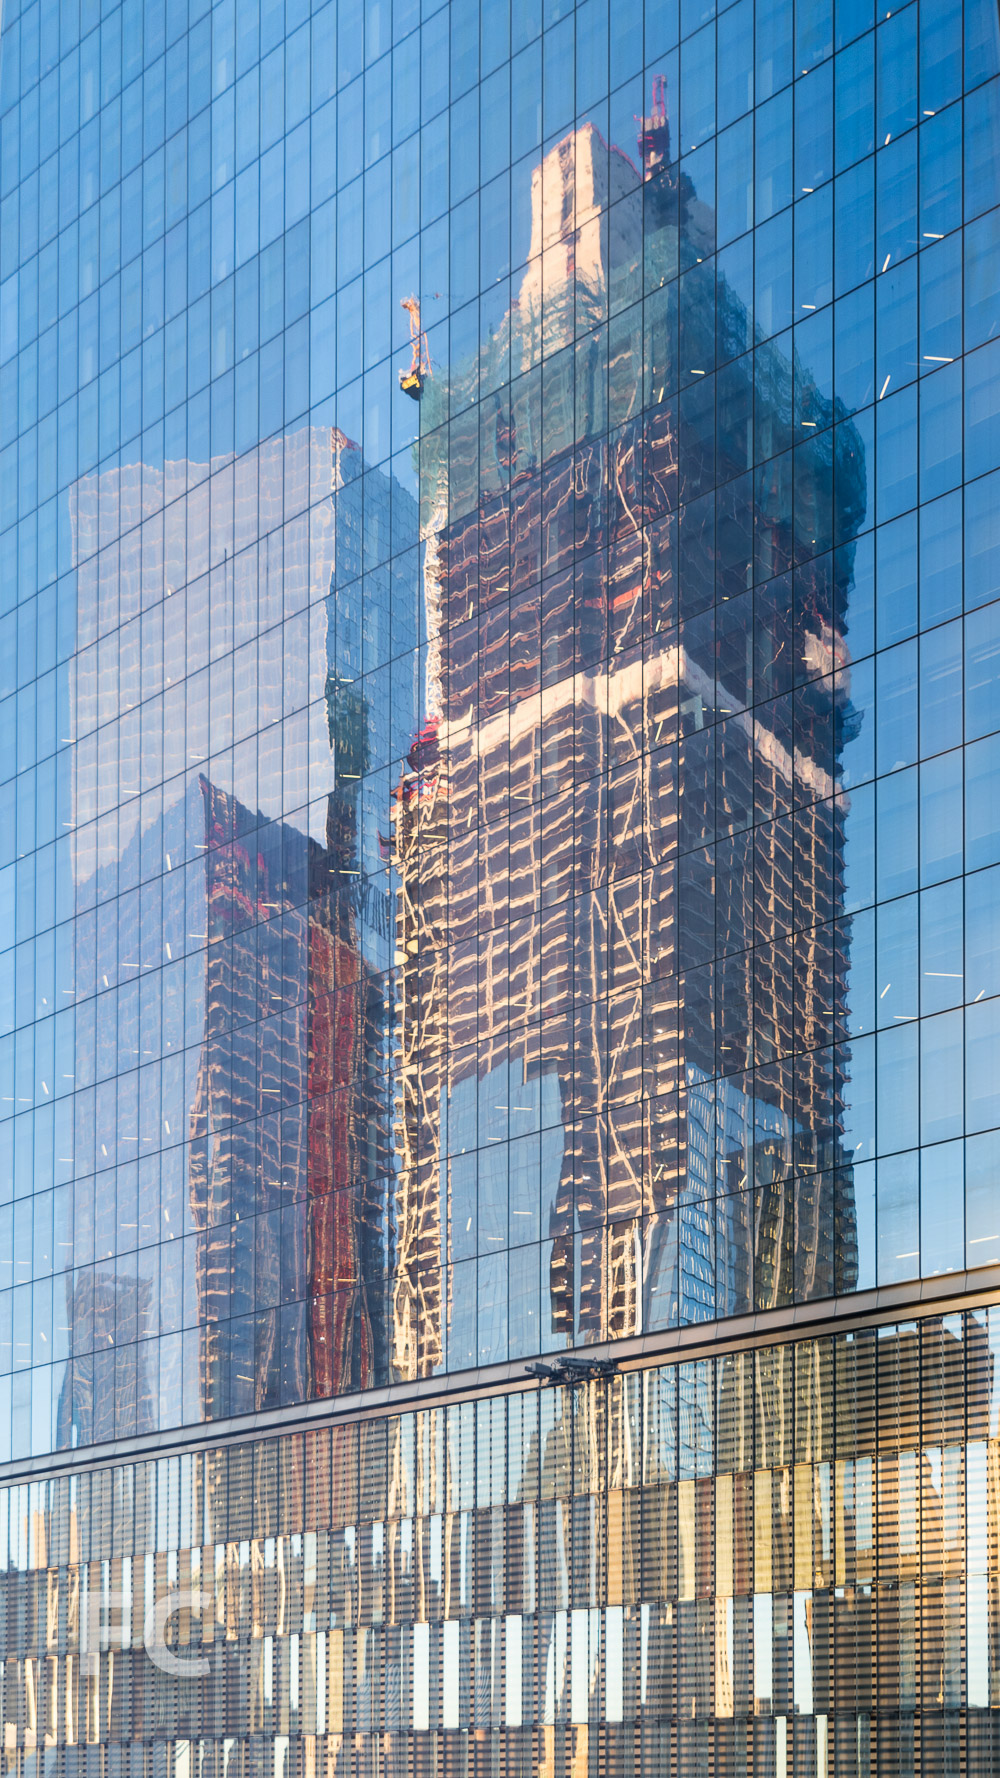 Reflections of 3 and 4 World Trade Center on the facade of 1 World Trade Center.